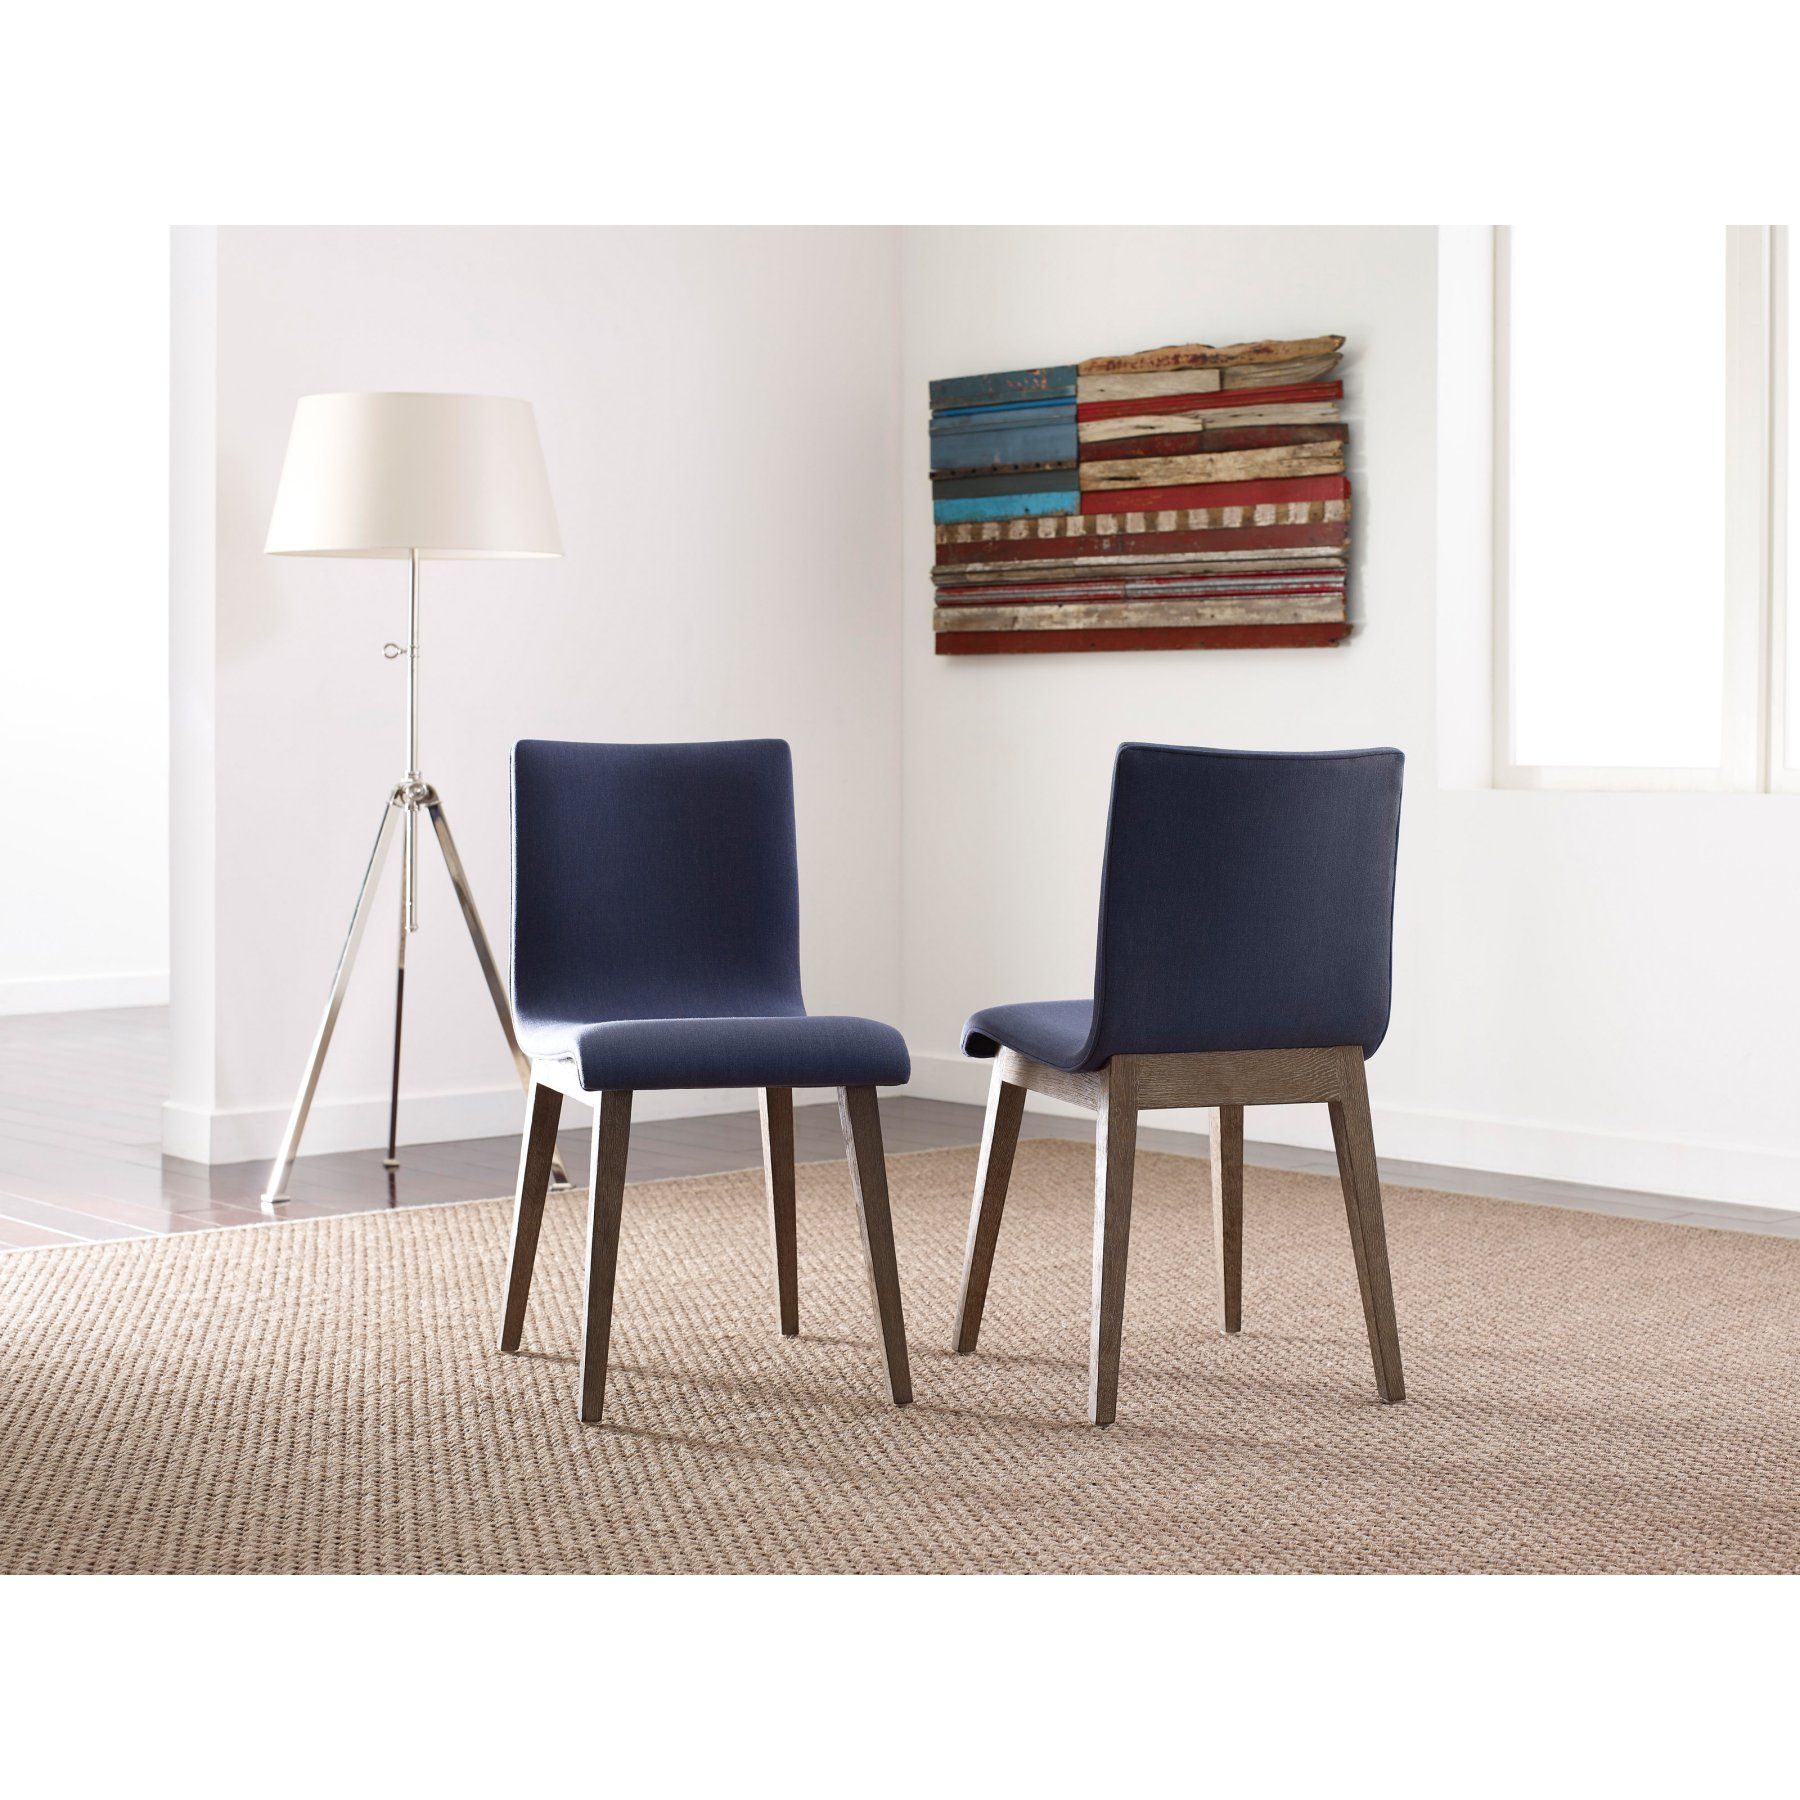 Tommy Hilfiger Mankato Dining Chair with Tapered Oak Legs ... on ralph lauren furniture, michael kors furniture, pierre cardin furniture, dior furniture,